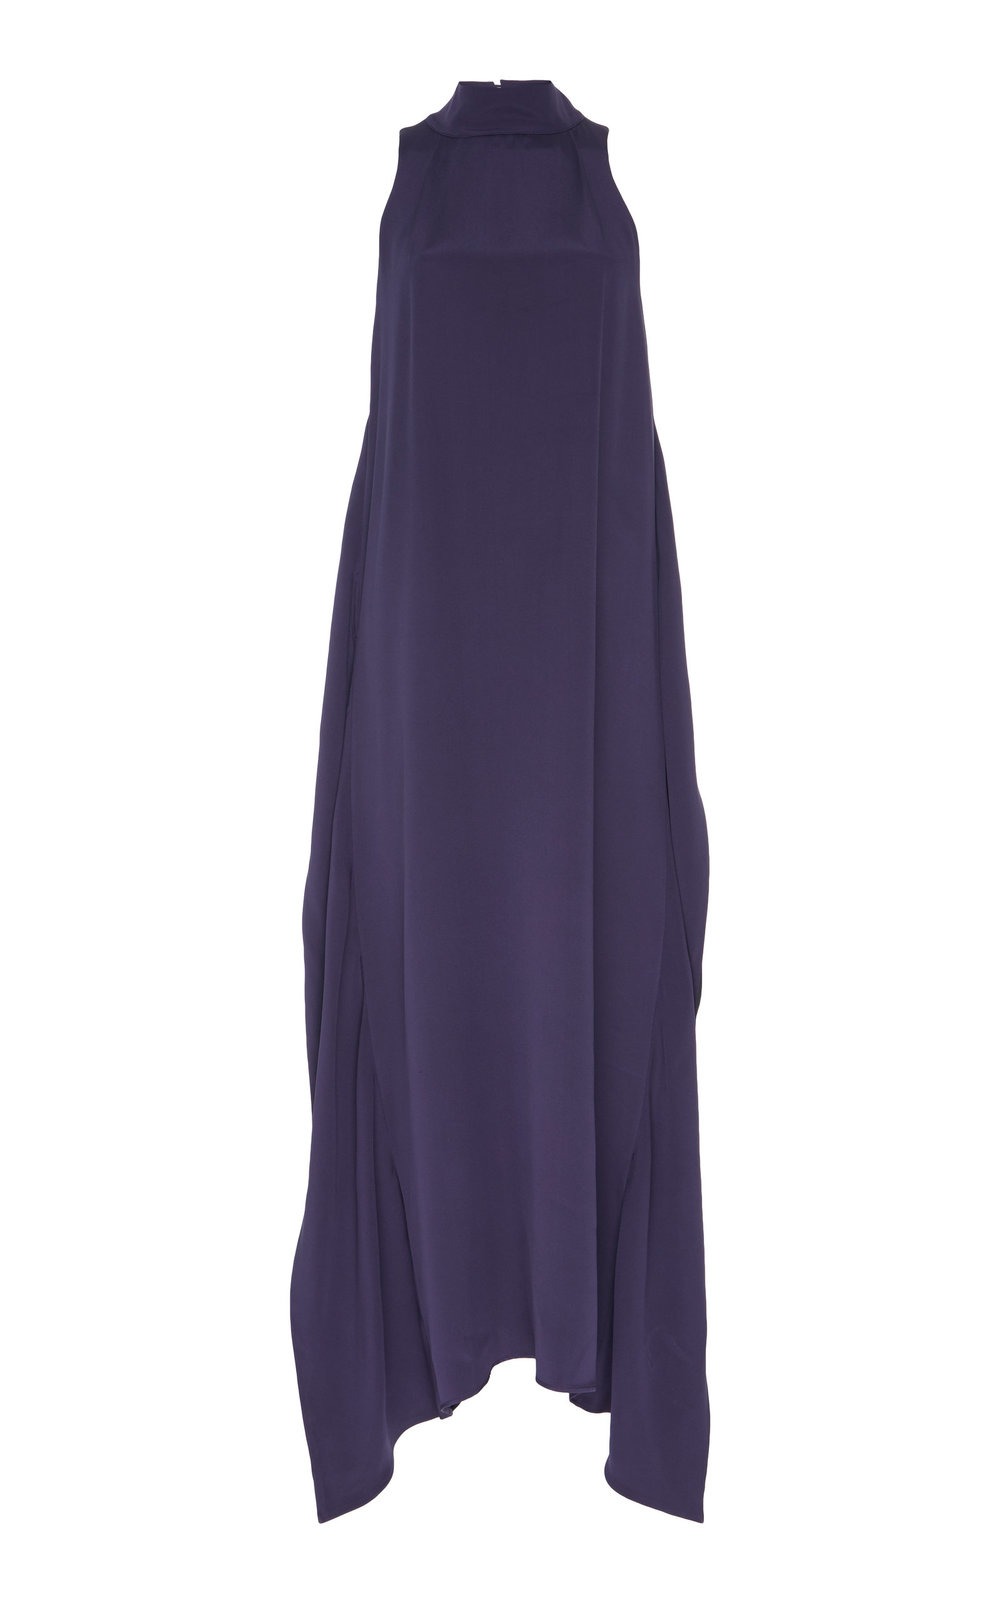 Hyacinth Silk Dress - INK PURPLE  A light-weight silk dress, with a double-layered back. The subtle flared cut and high neckline create an effortlessly elegant look.